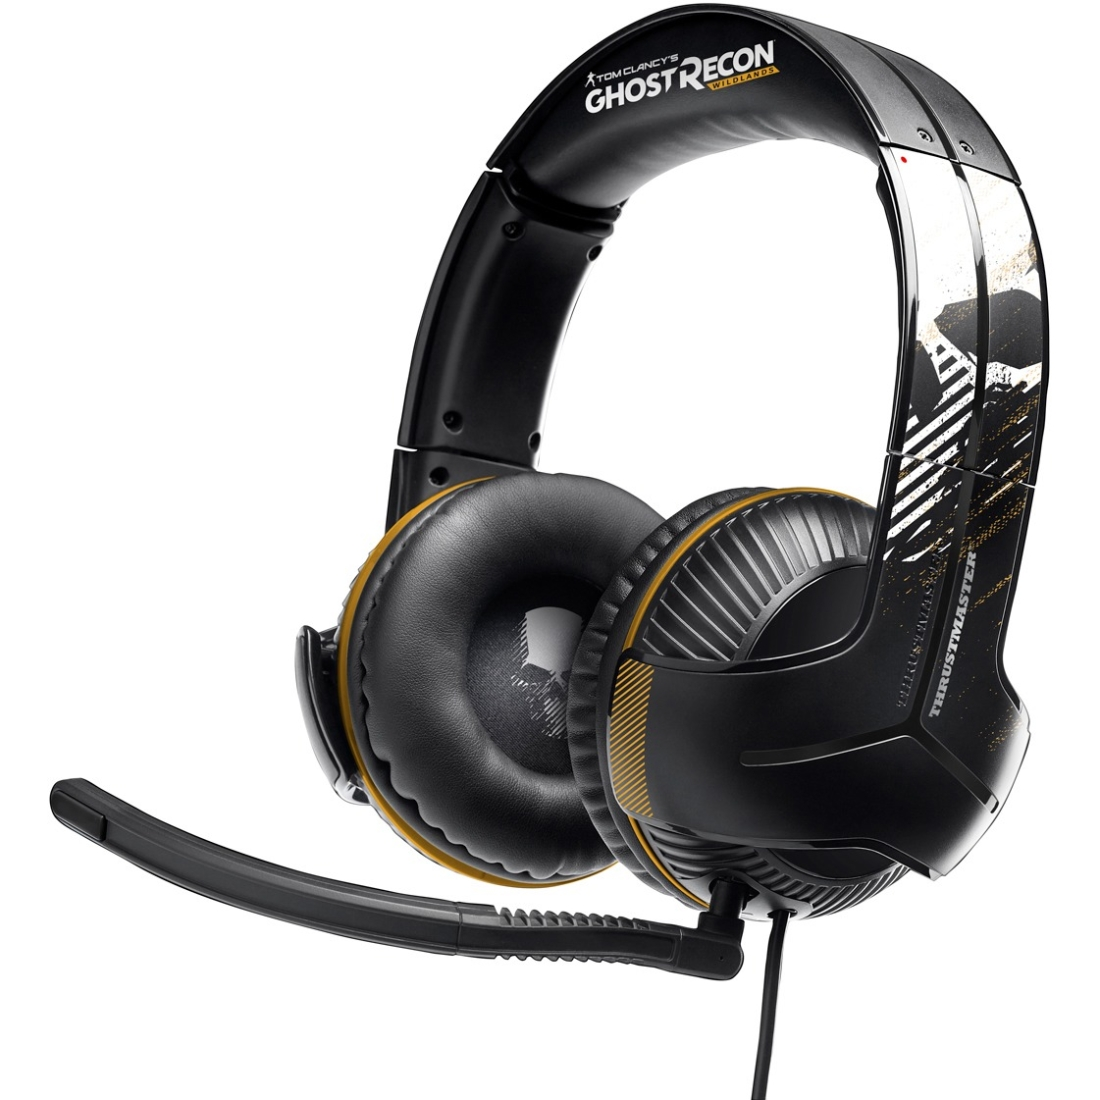 Thrustmaster 4460142 Xbox One Y-350p Ghost Recon Wildlands Edition Gaming Headset by Thrustmaster